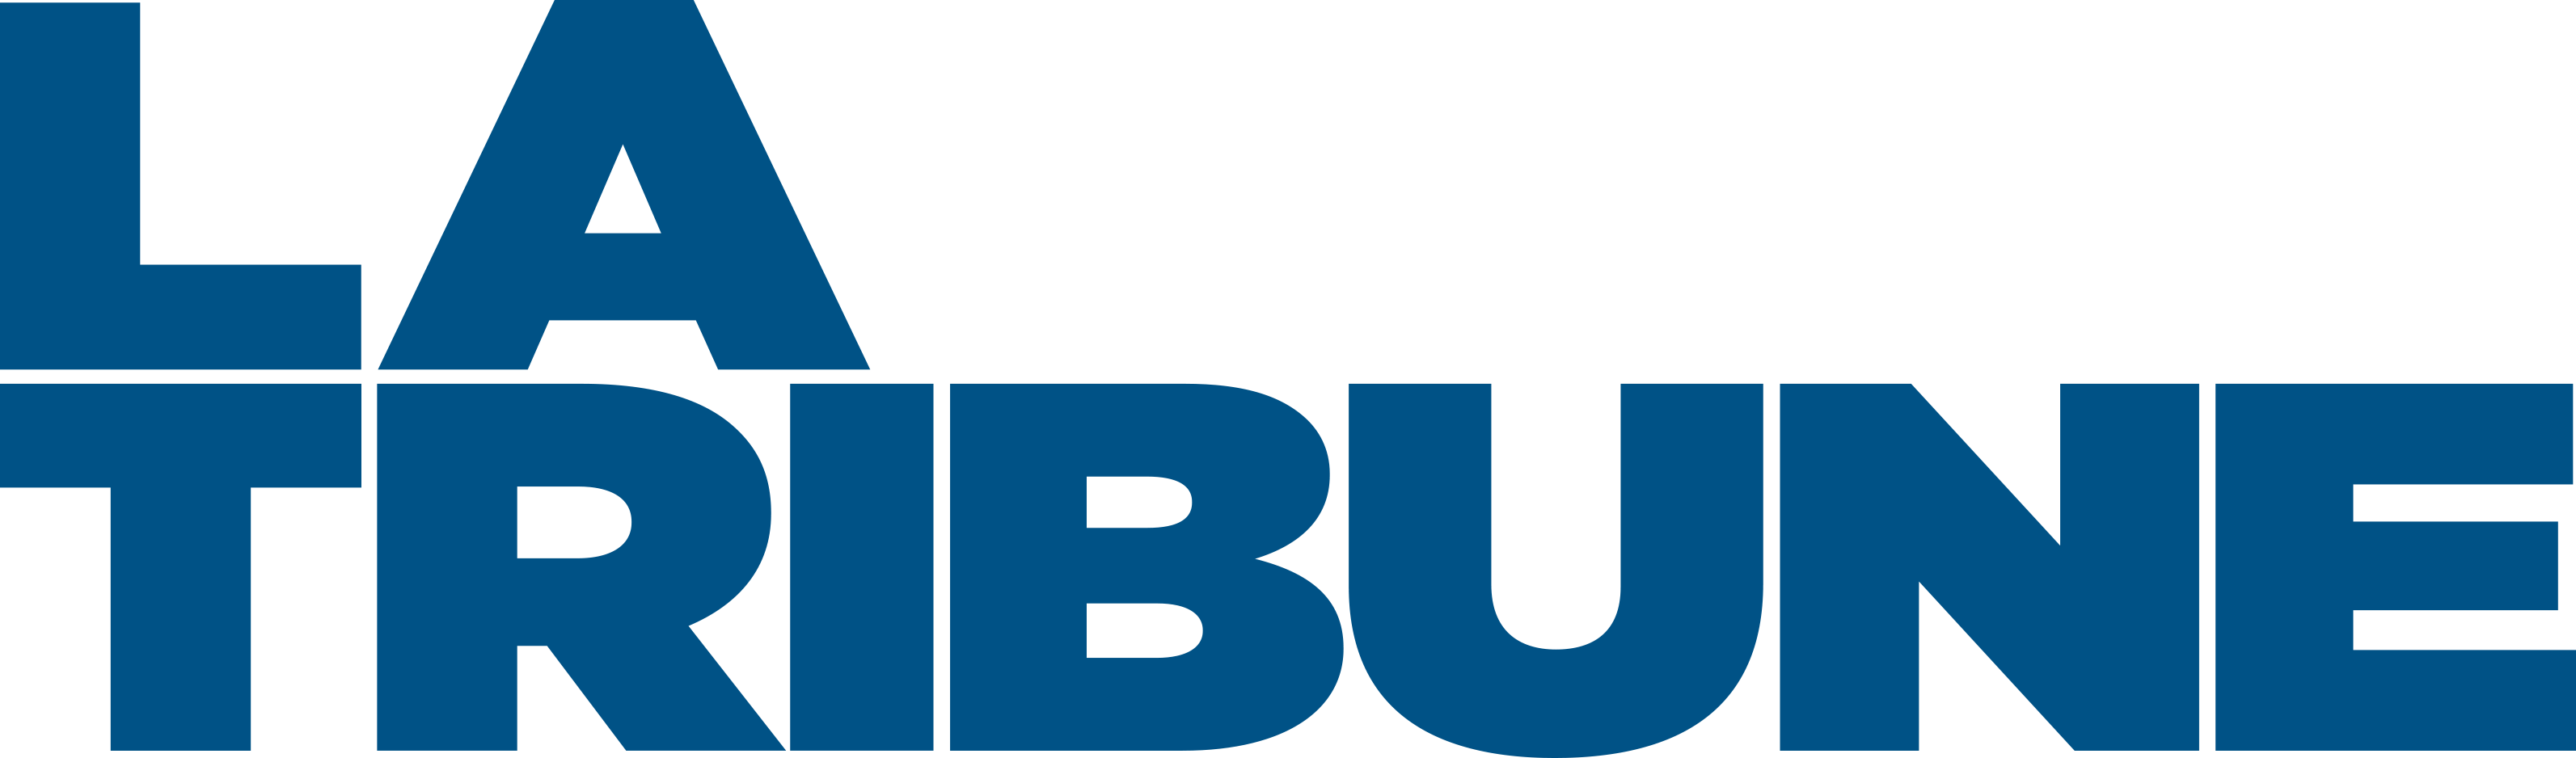 LOGO_LA_TRIBUNE_2018